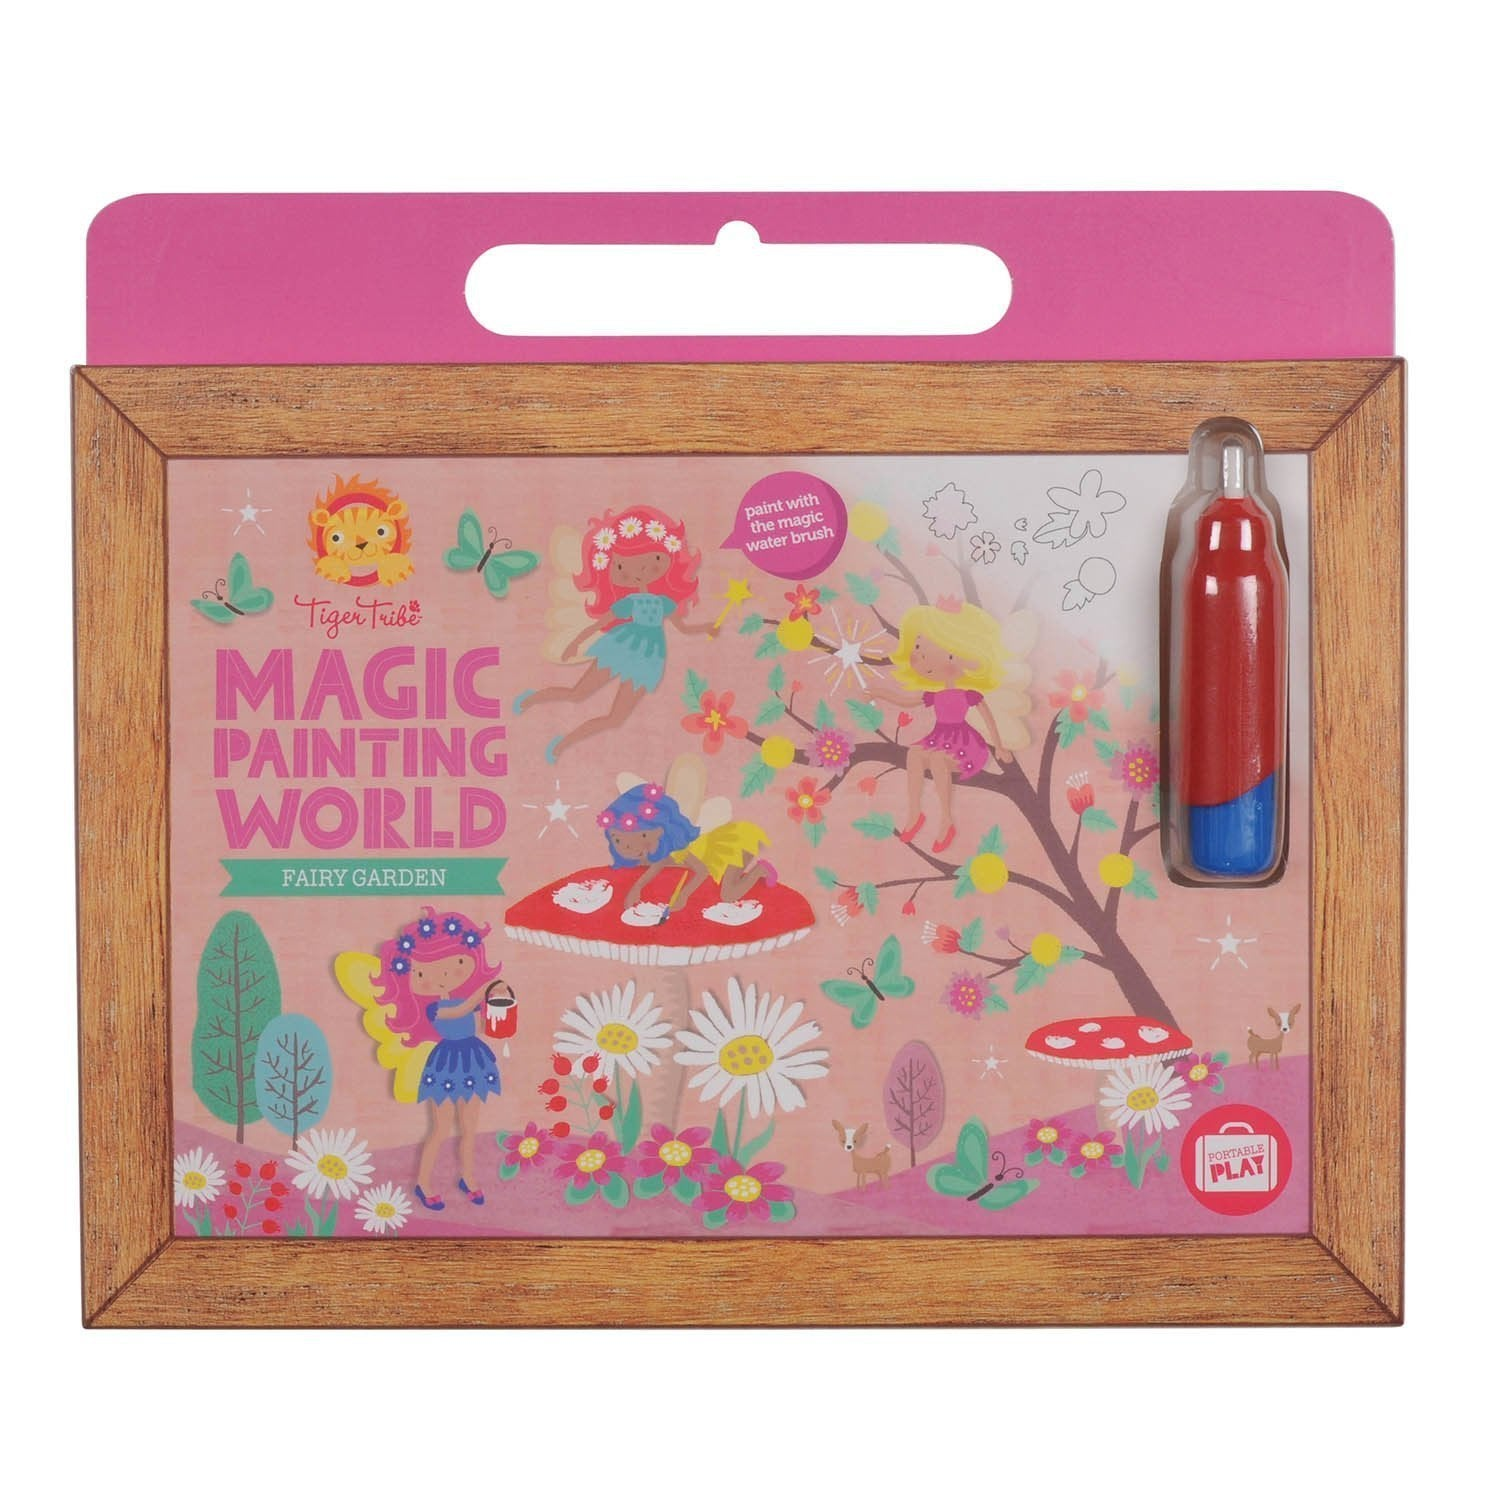 Magic Painting World - Fairy Garden - Tiger Tribe - Hugs For Kids